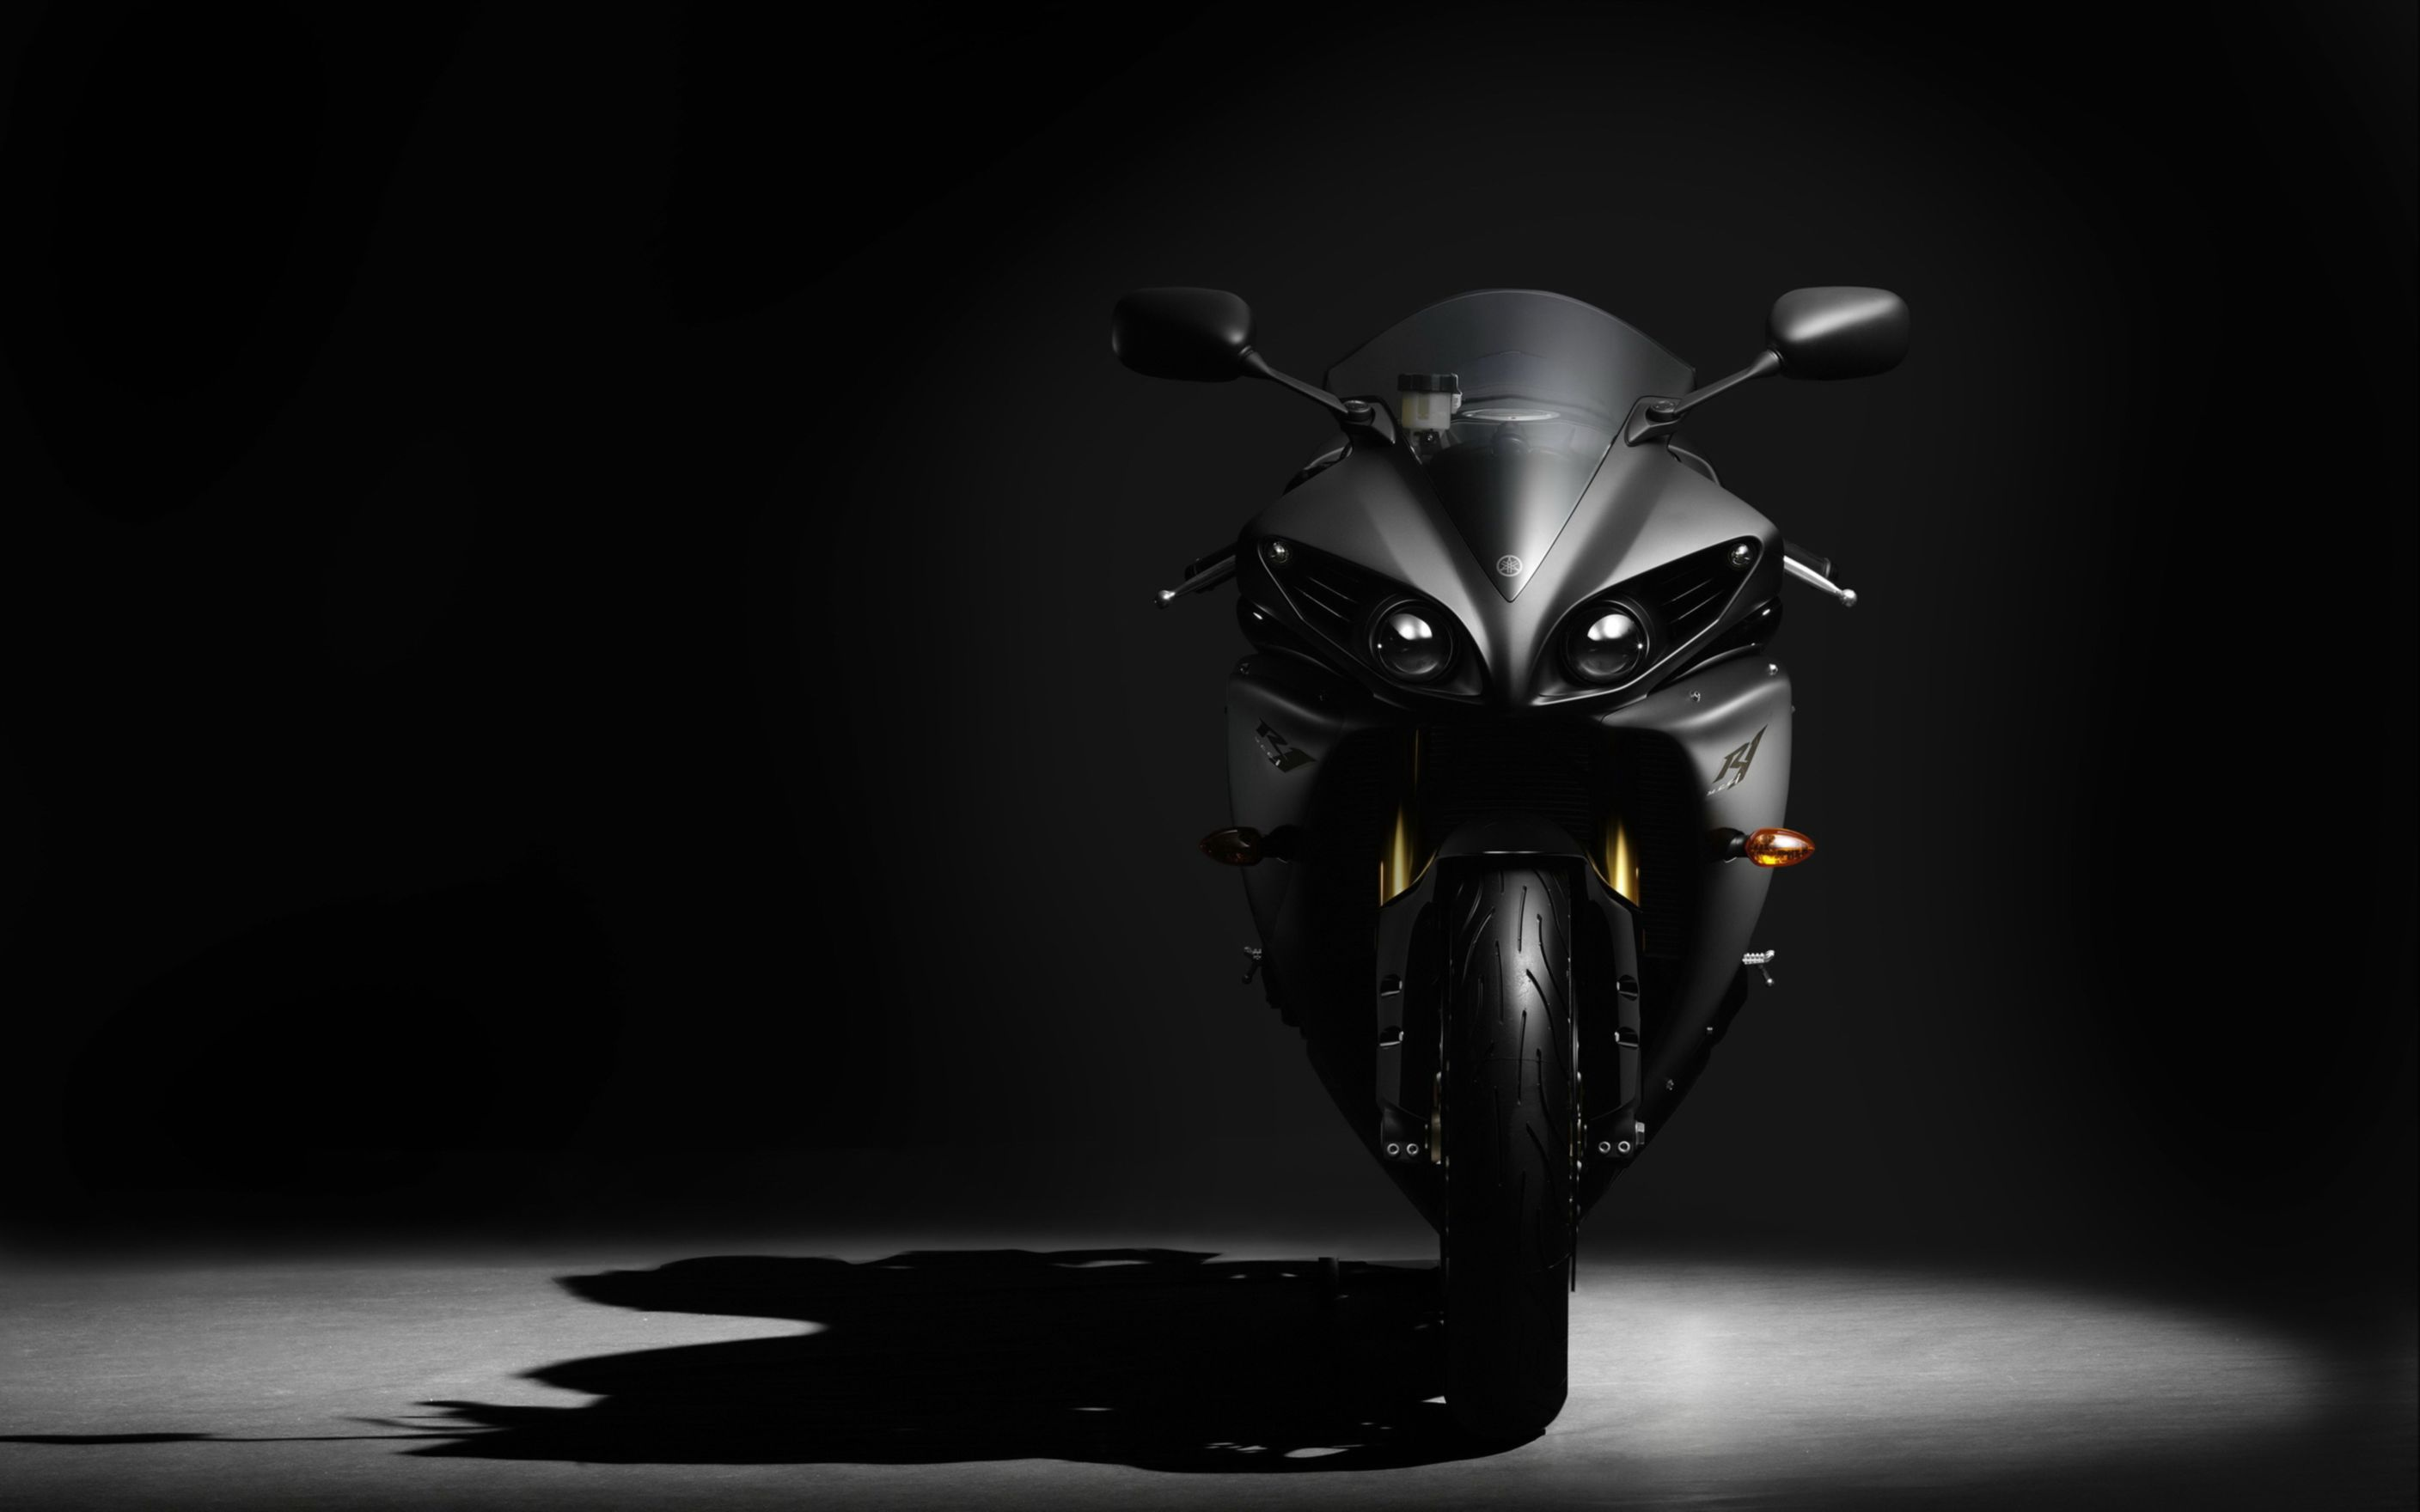 Download free HD 2012 Yamaha YZF R1 Wide Wallpaper, image